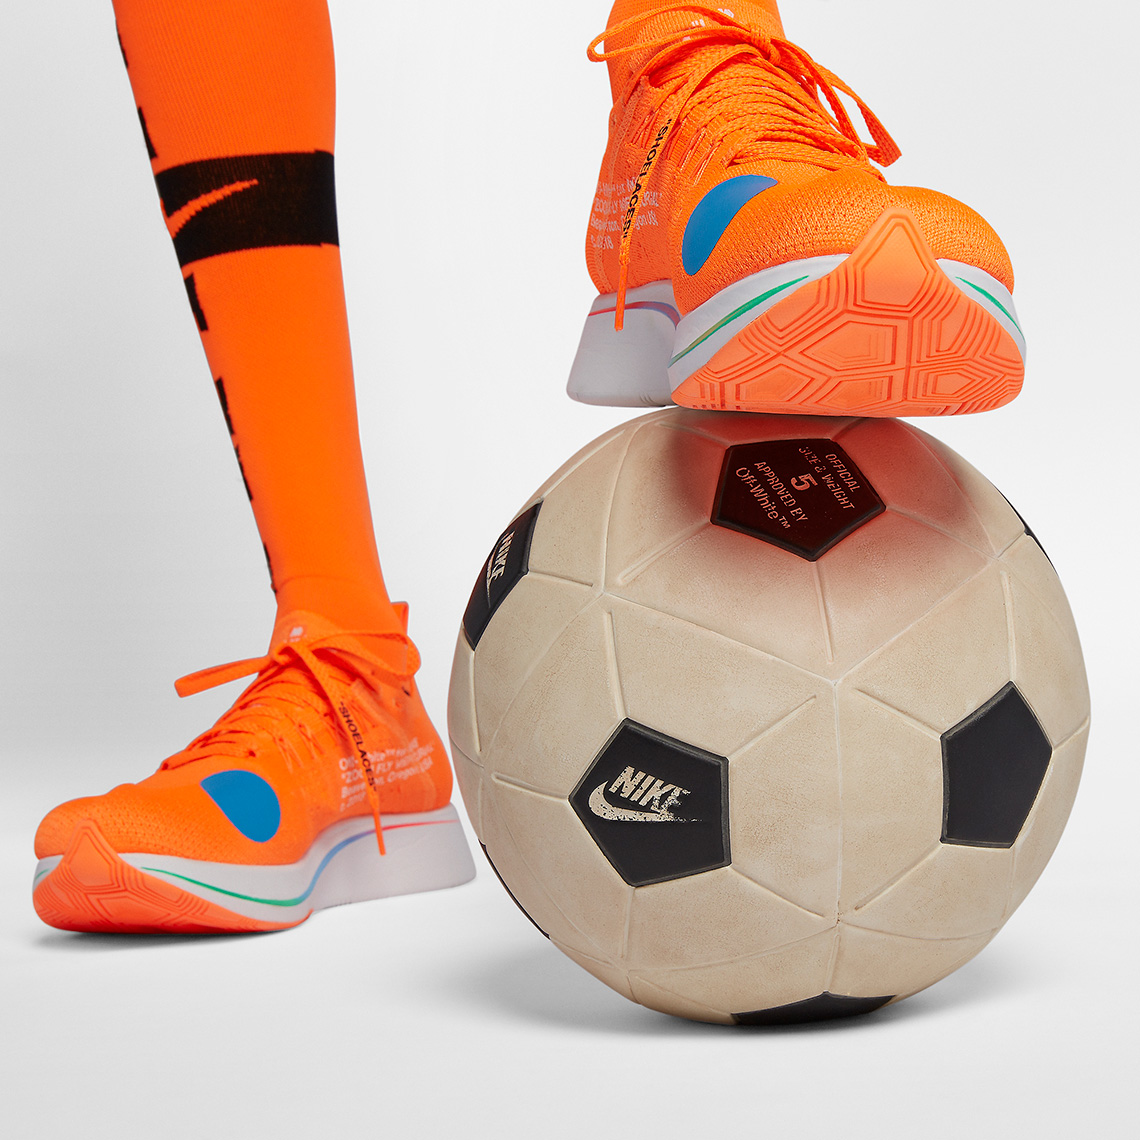 72585a4ad Nike x OFF WHITE Magia Soccer Ball Release Date  June 14